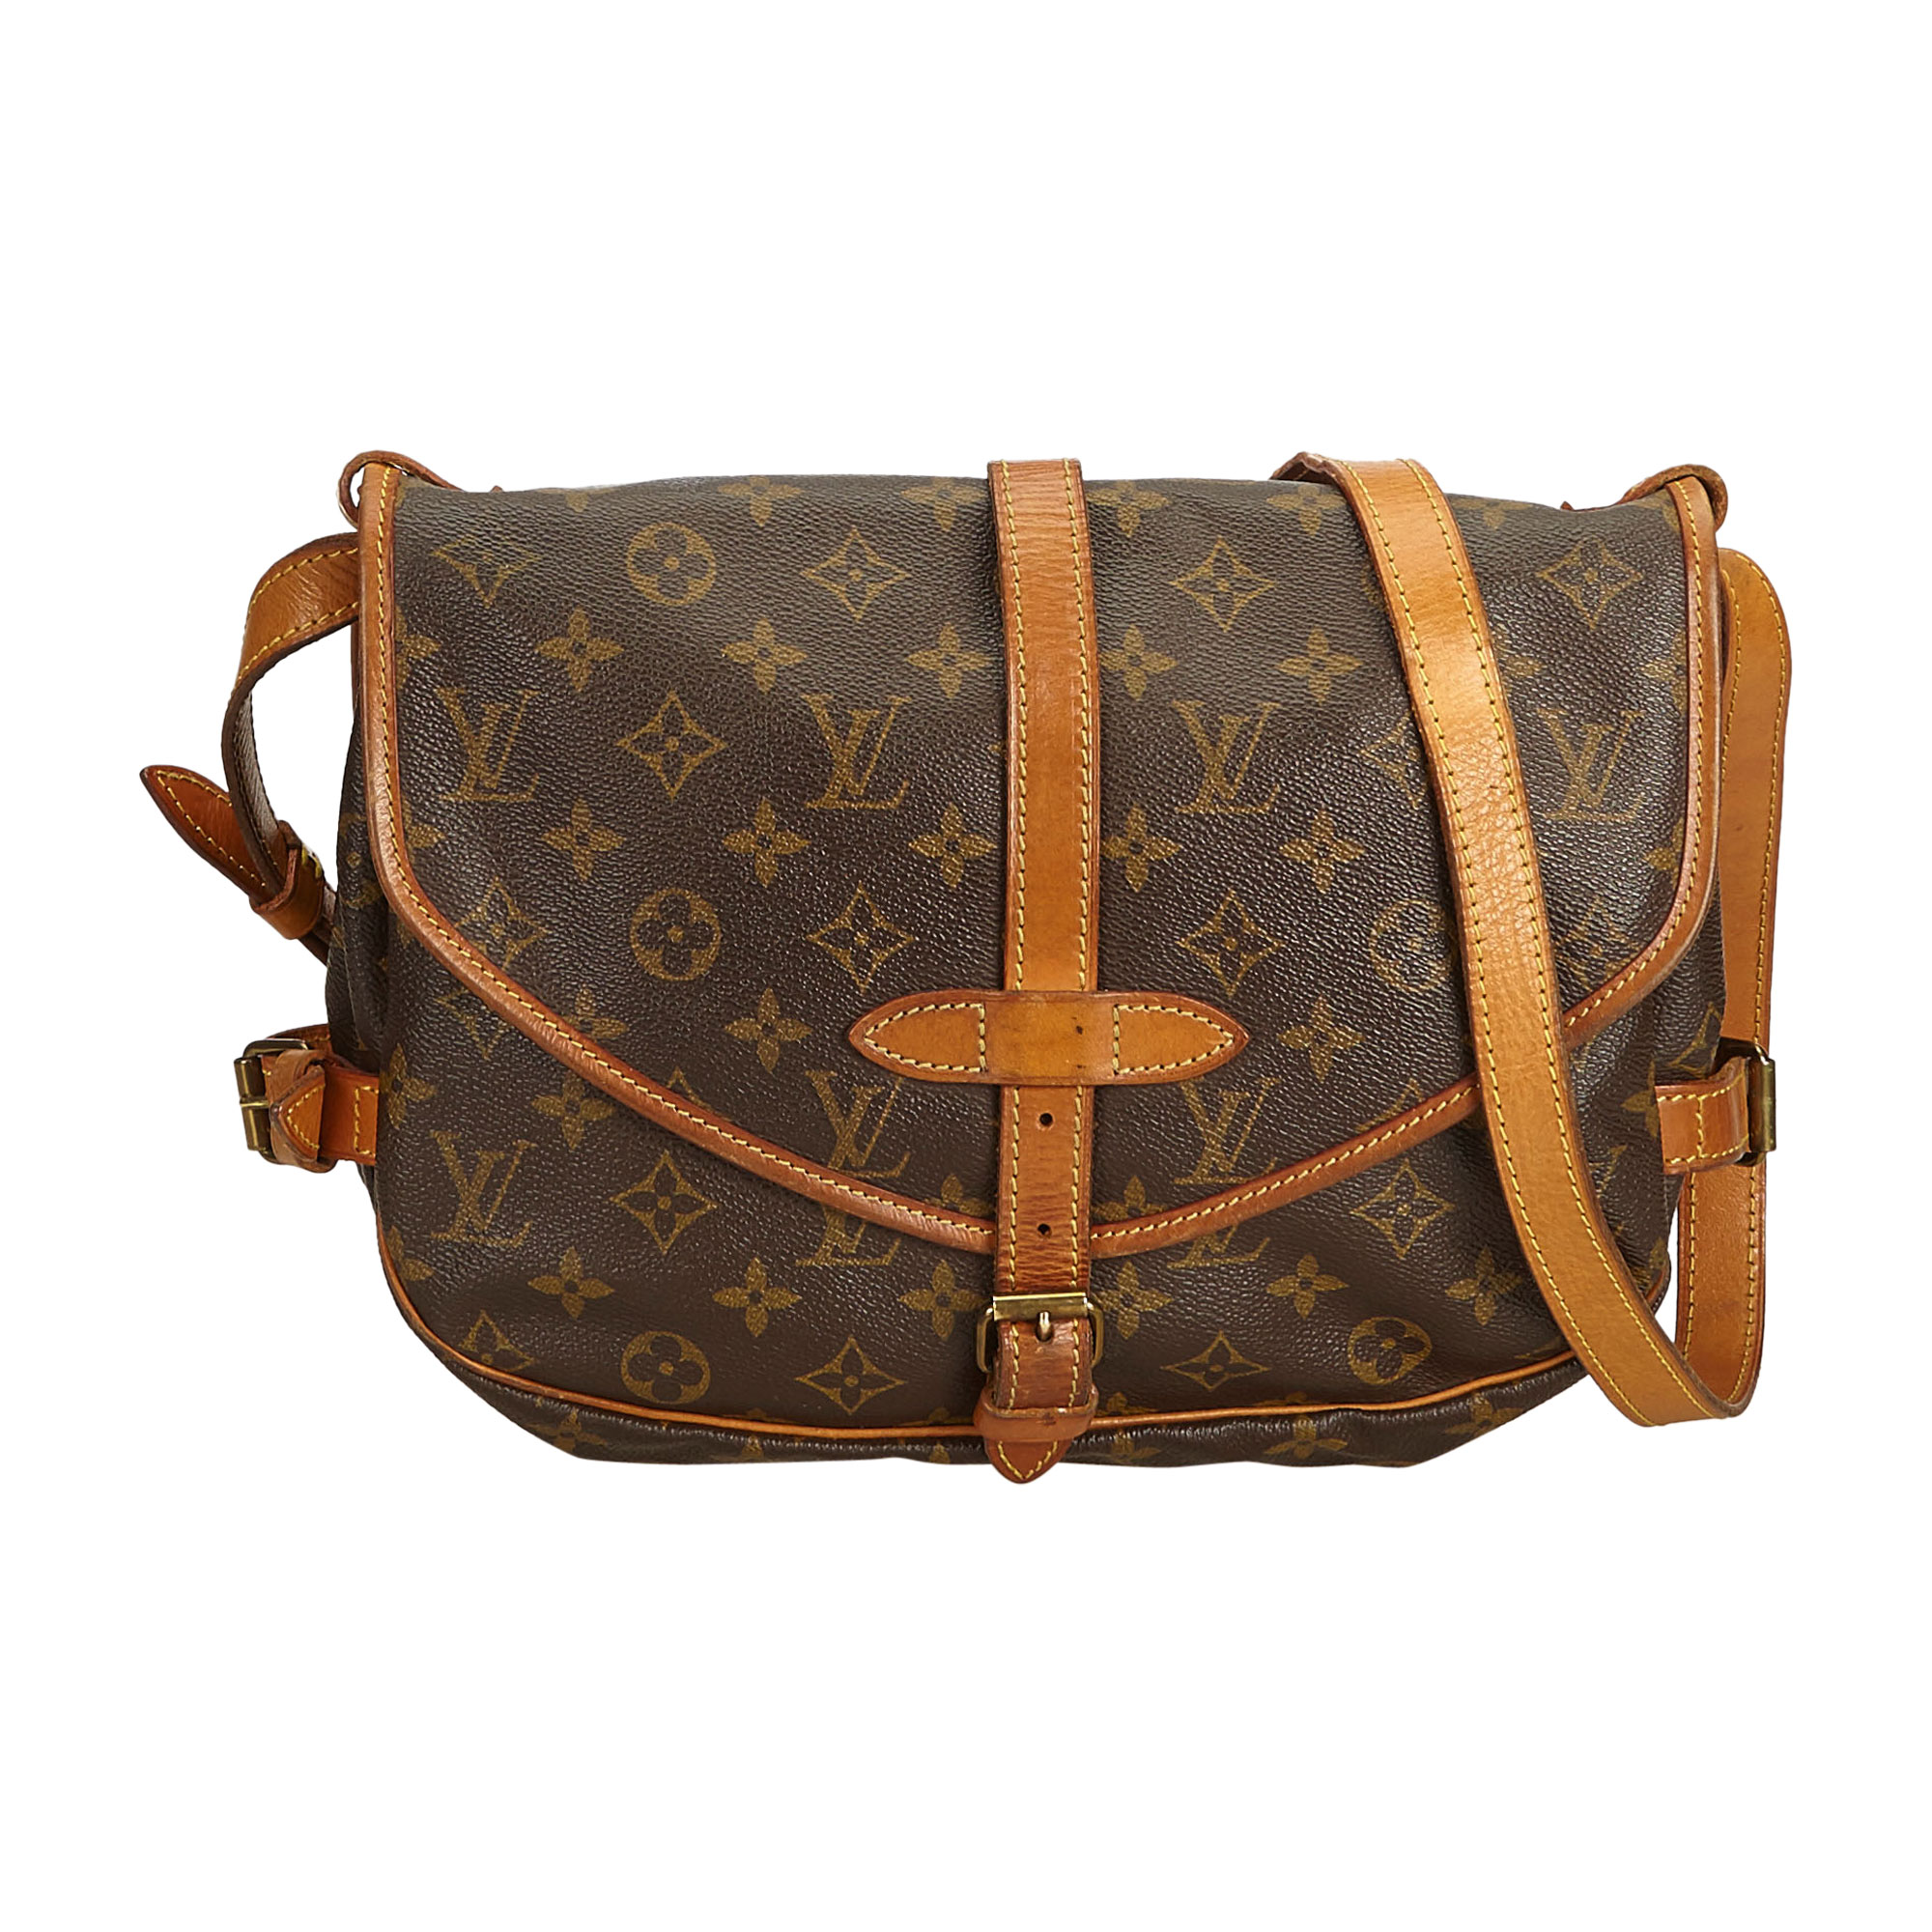 Sac en bandoulière en cuir LOUIS VUITTON brown - 8300819 c5ef3ec4883